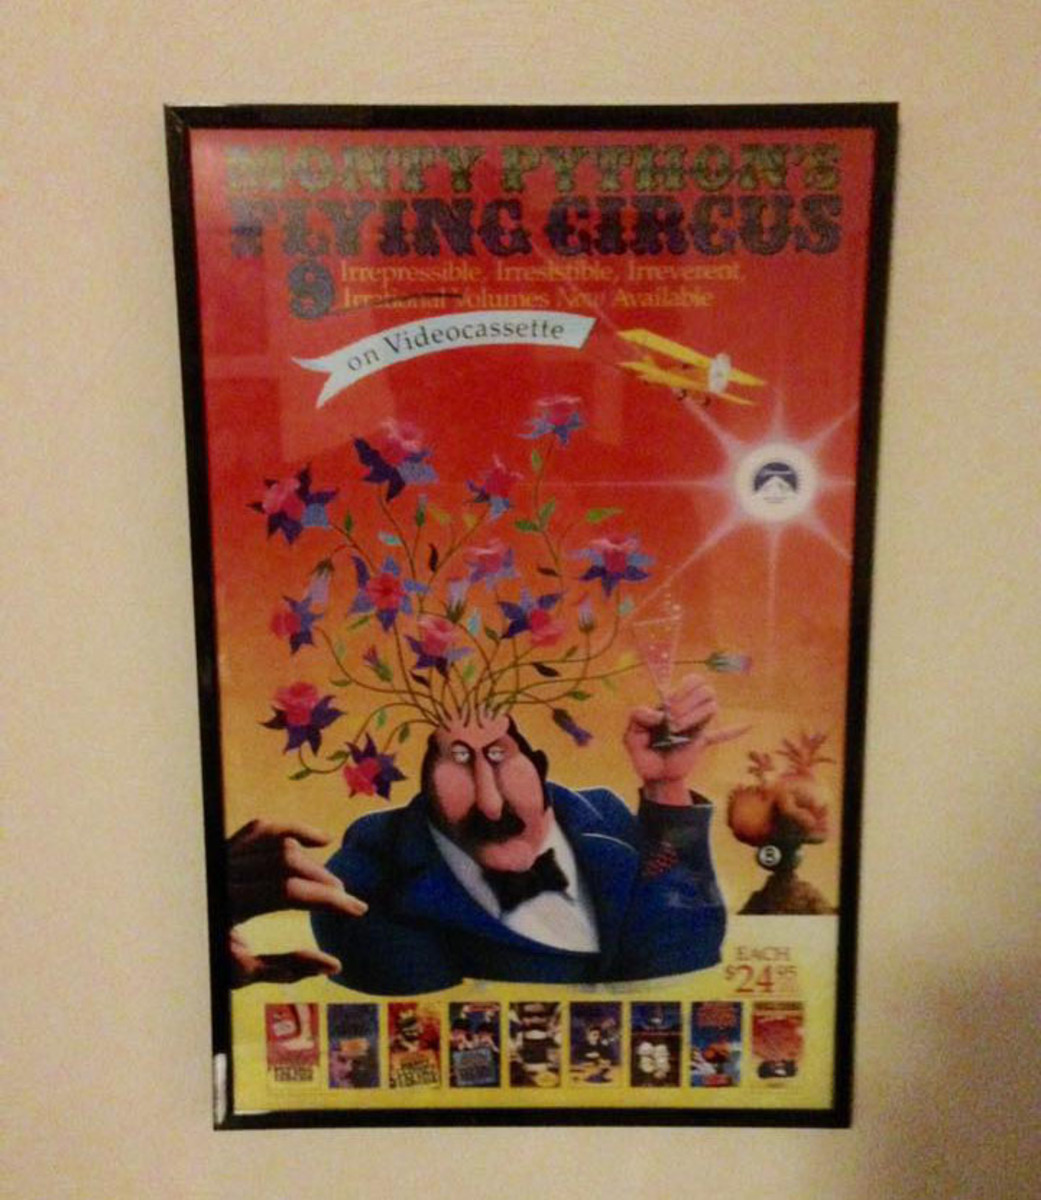 For this poster, my son used stick-on nails for hanging. The frame already had a saw-tooth hook on the back.